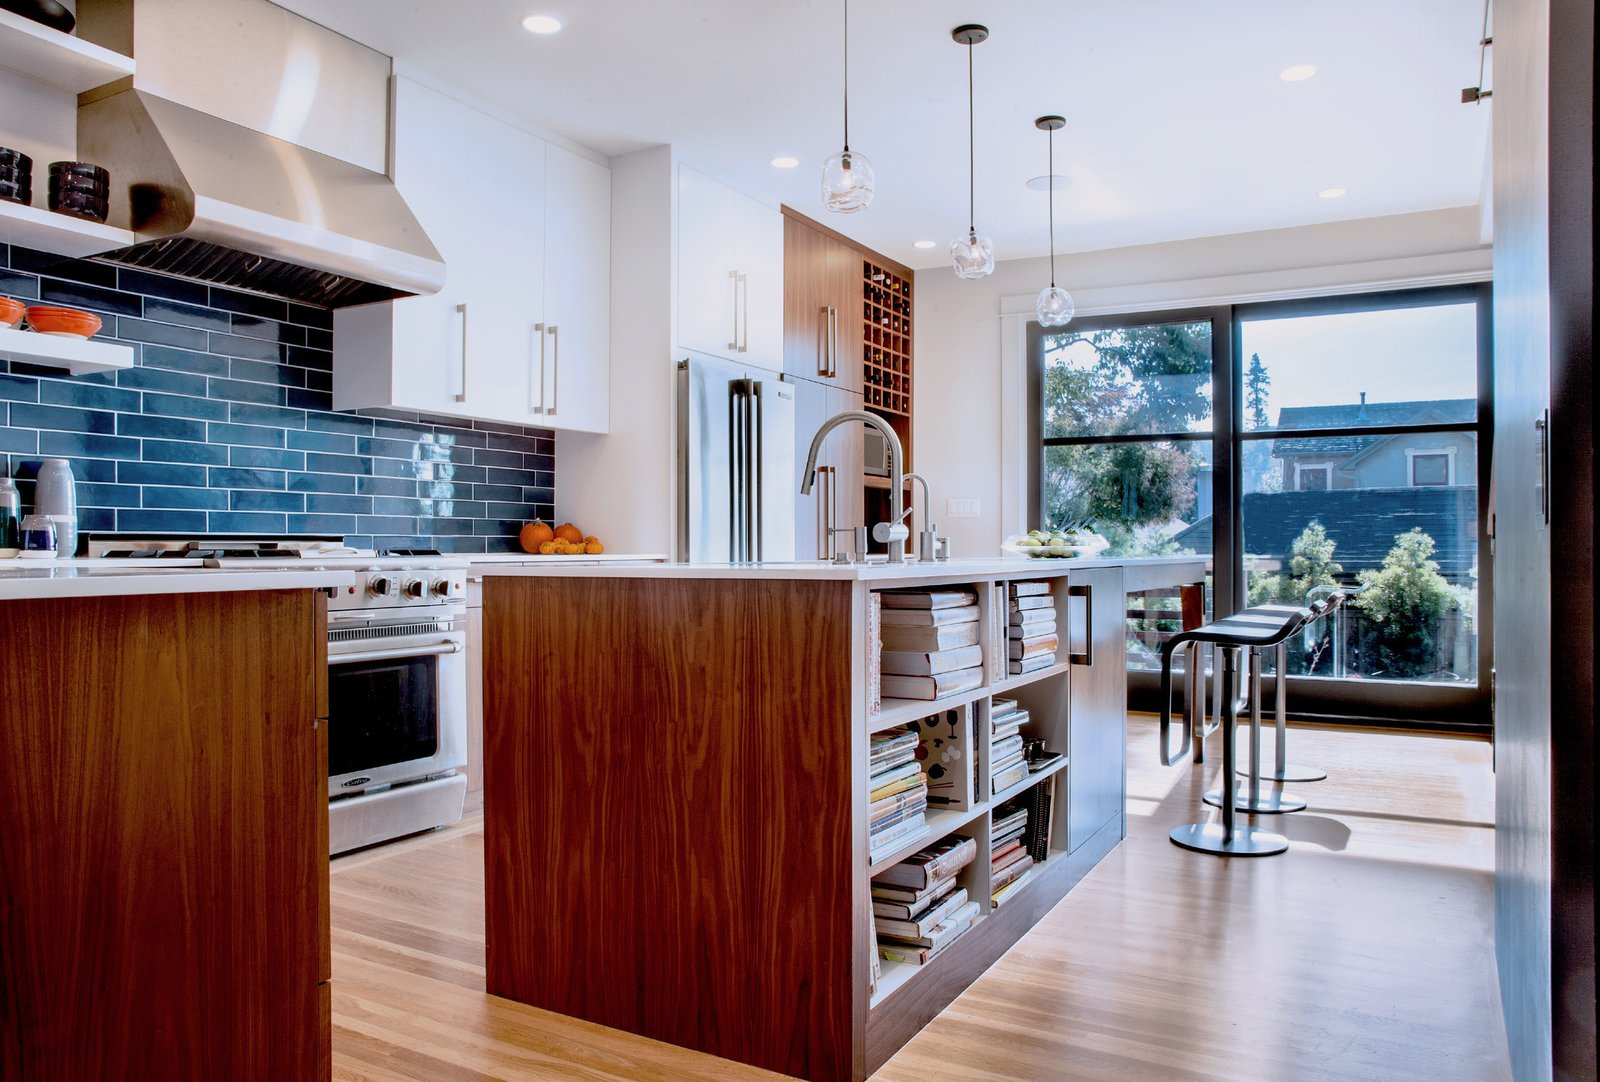 A Fresh Kitchen Update For The Family That Cooks Together